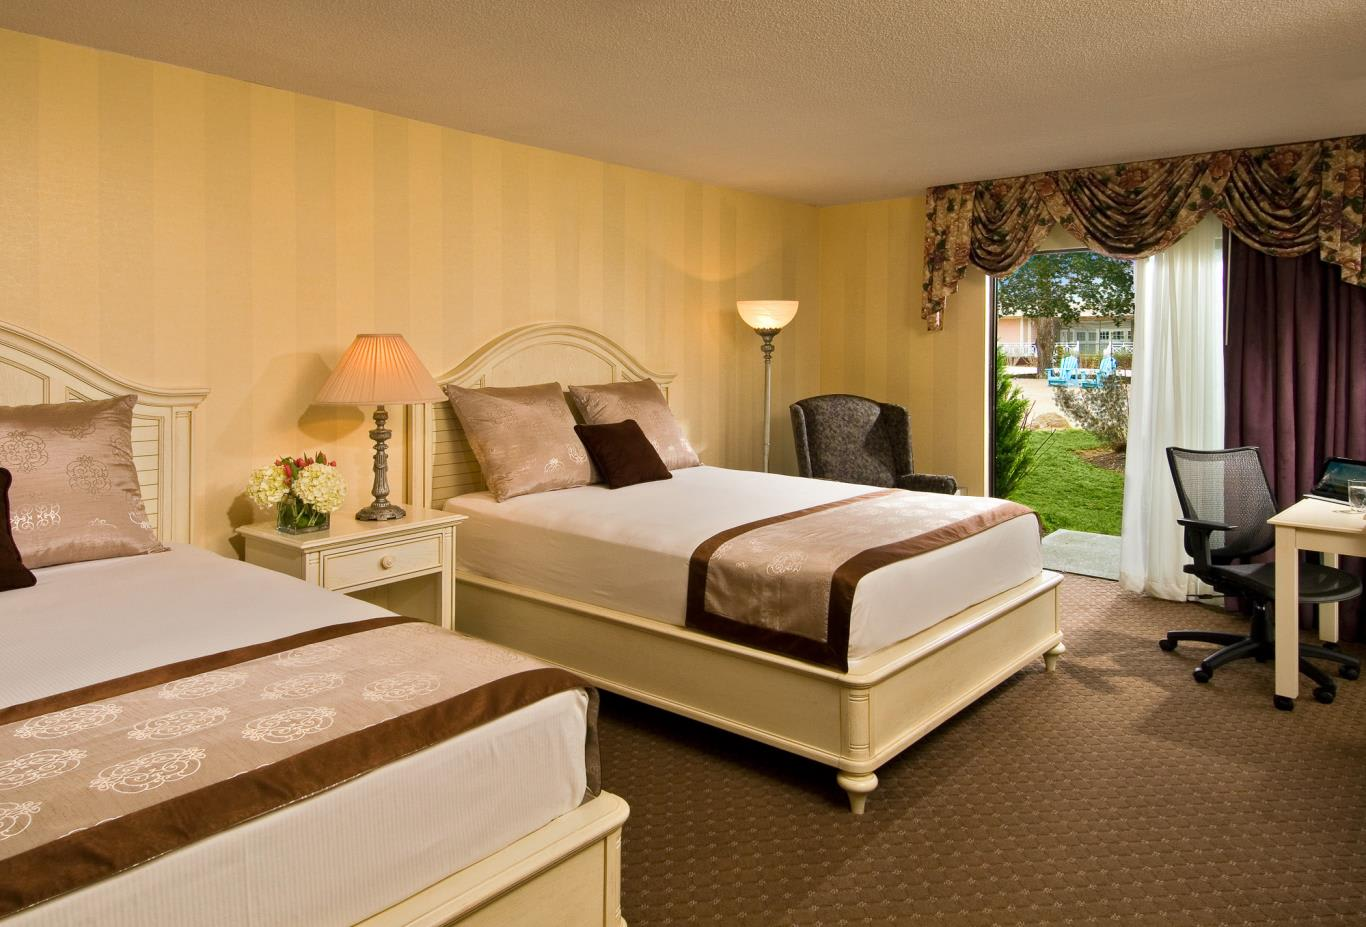 Cape Codder Room with queen size bed & courtyard view